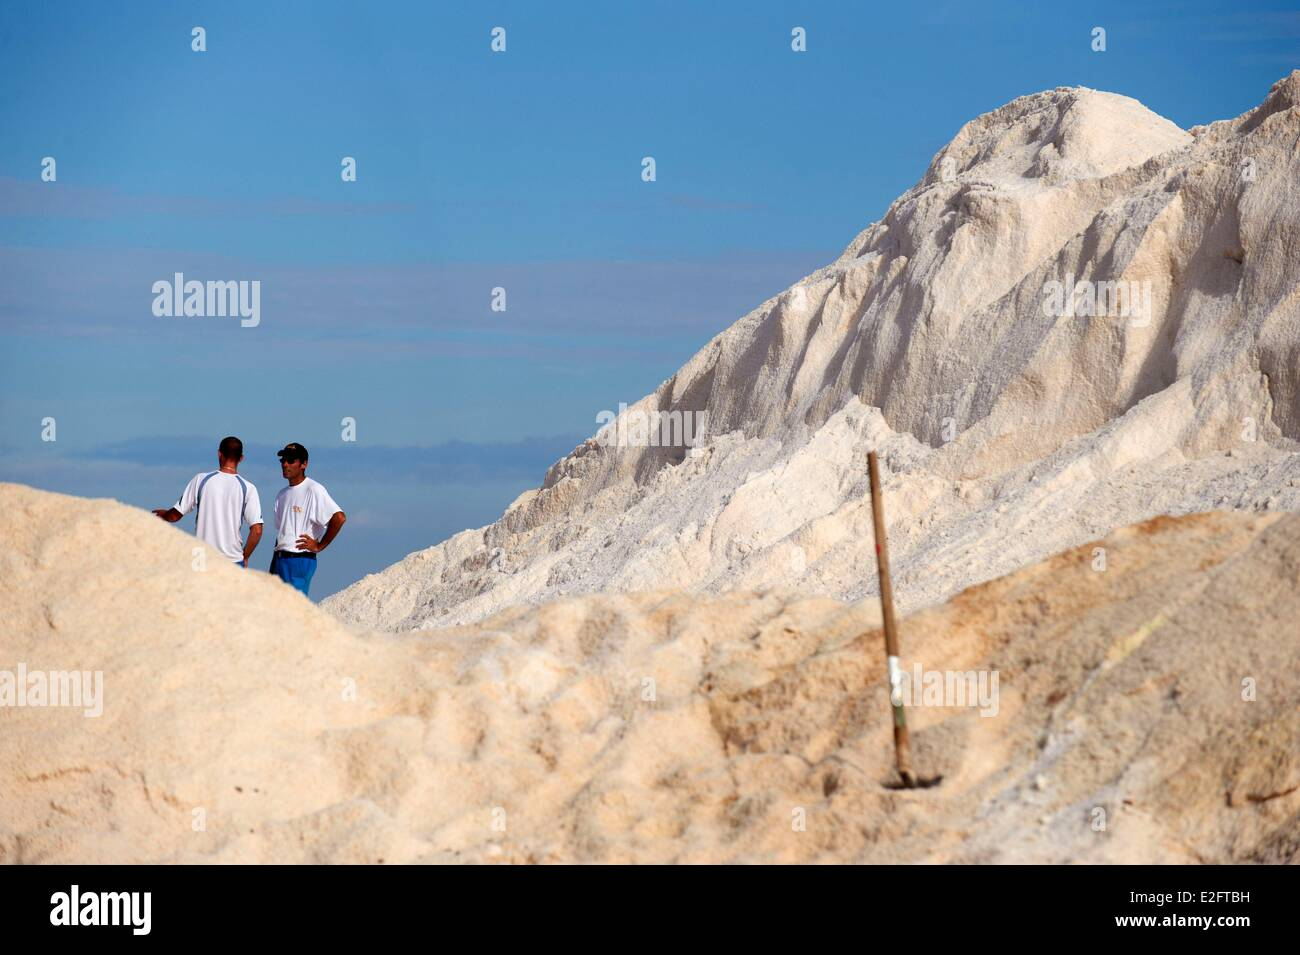 France Aude Gruissan salines of the island of St. Martin in Gruissan crushing salt intended for salting roads - Stock Image